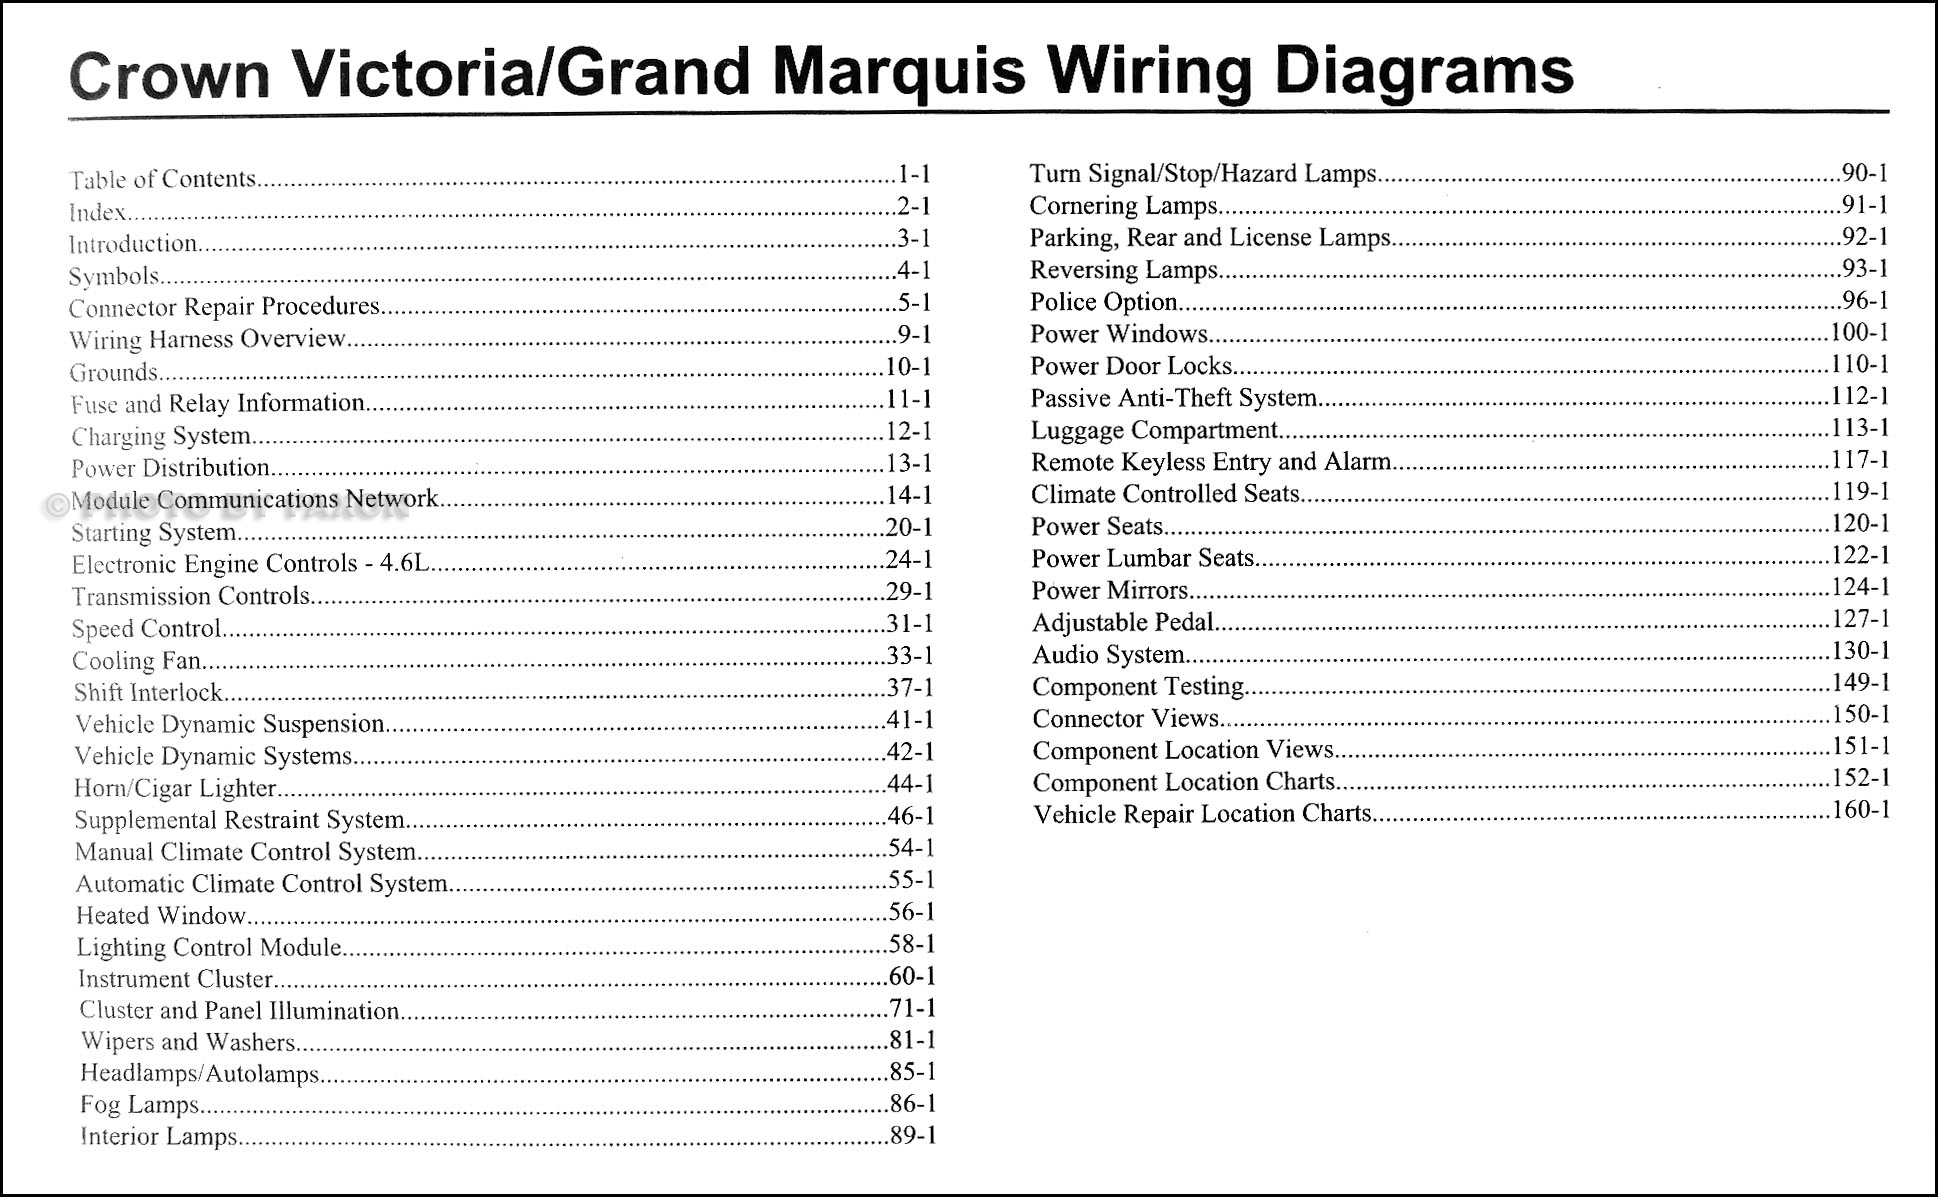 2009FordCrownVictoriaOWD TOC 2009 crown victoria & grand marquis original wiring diagram manual 2005 ford crown victoria radio wiring diagram at bayanpartner.co